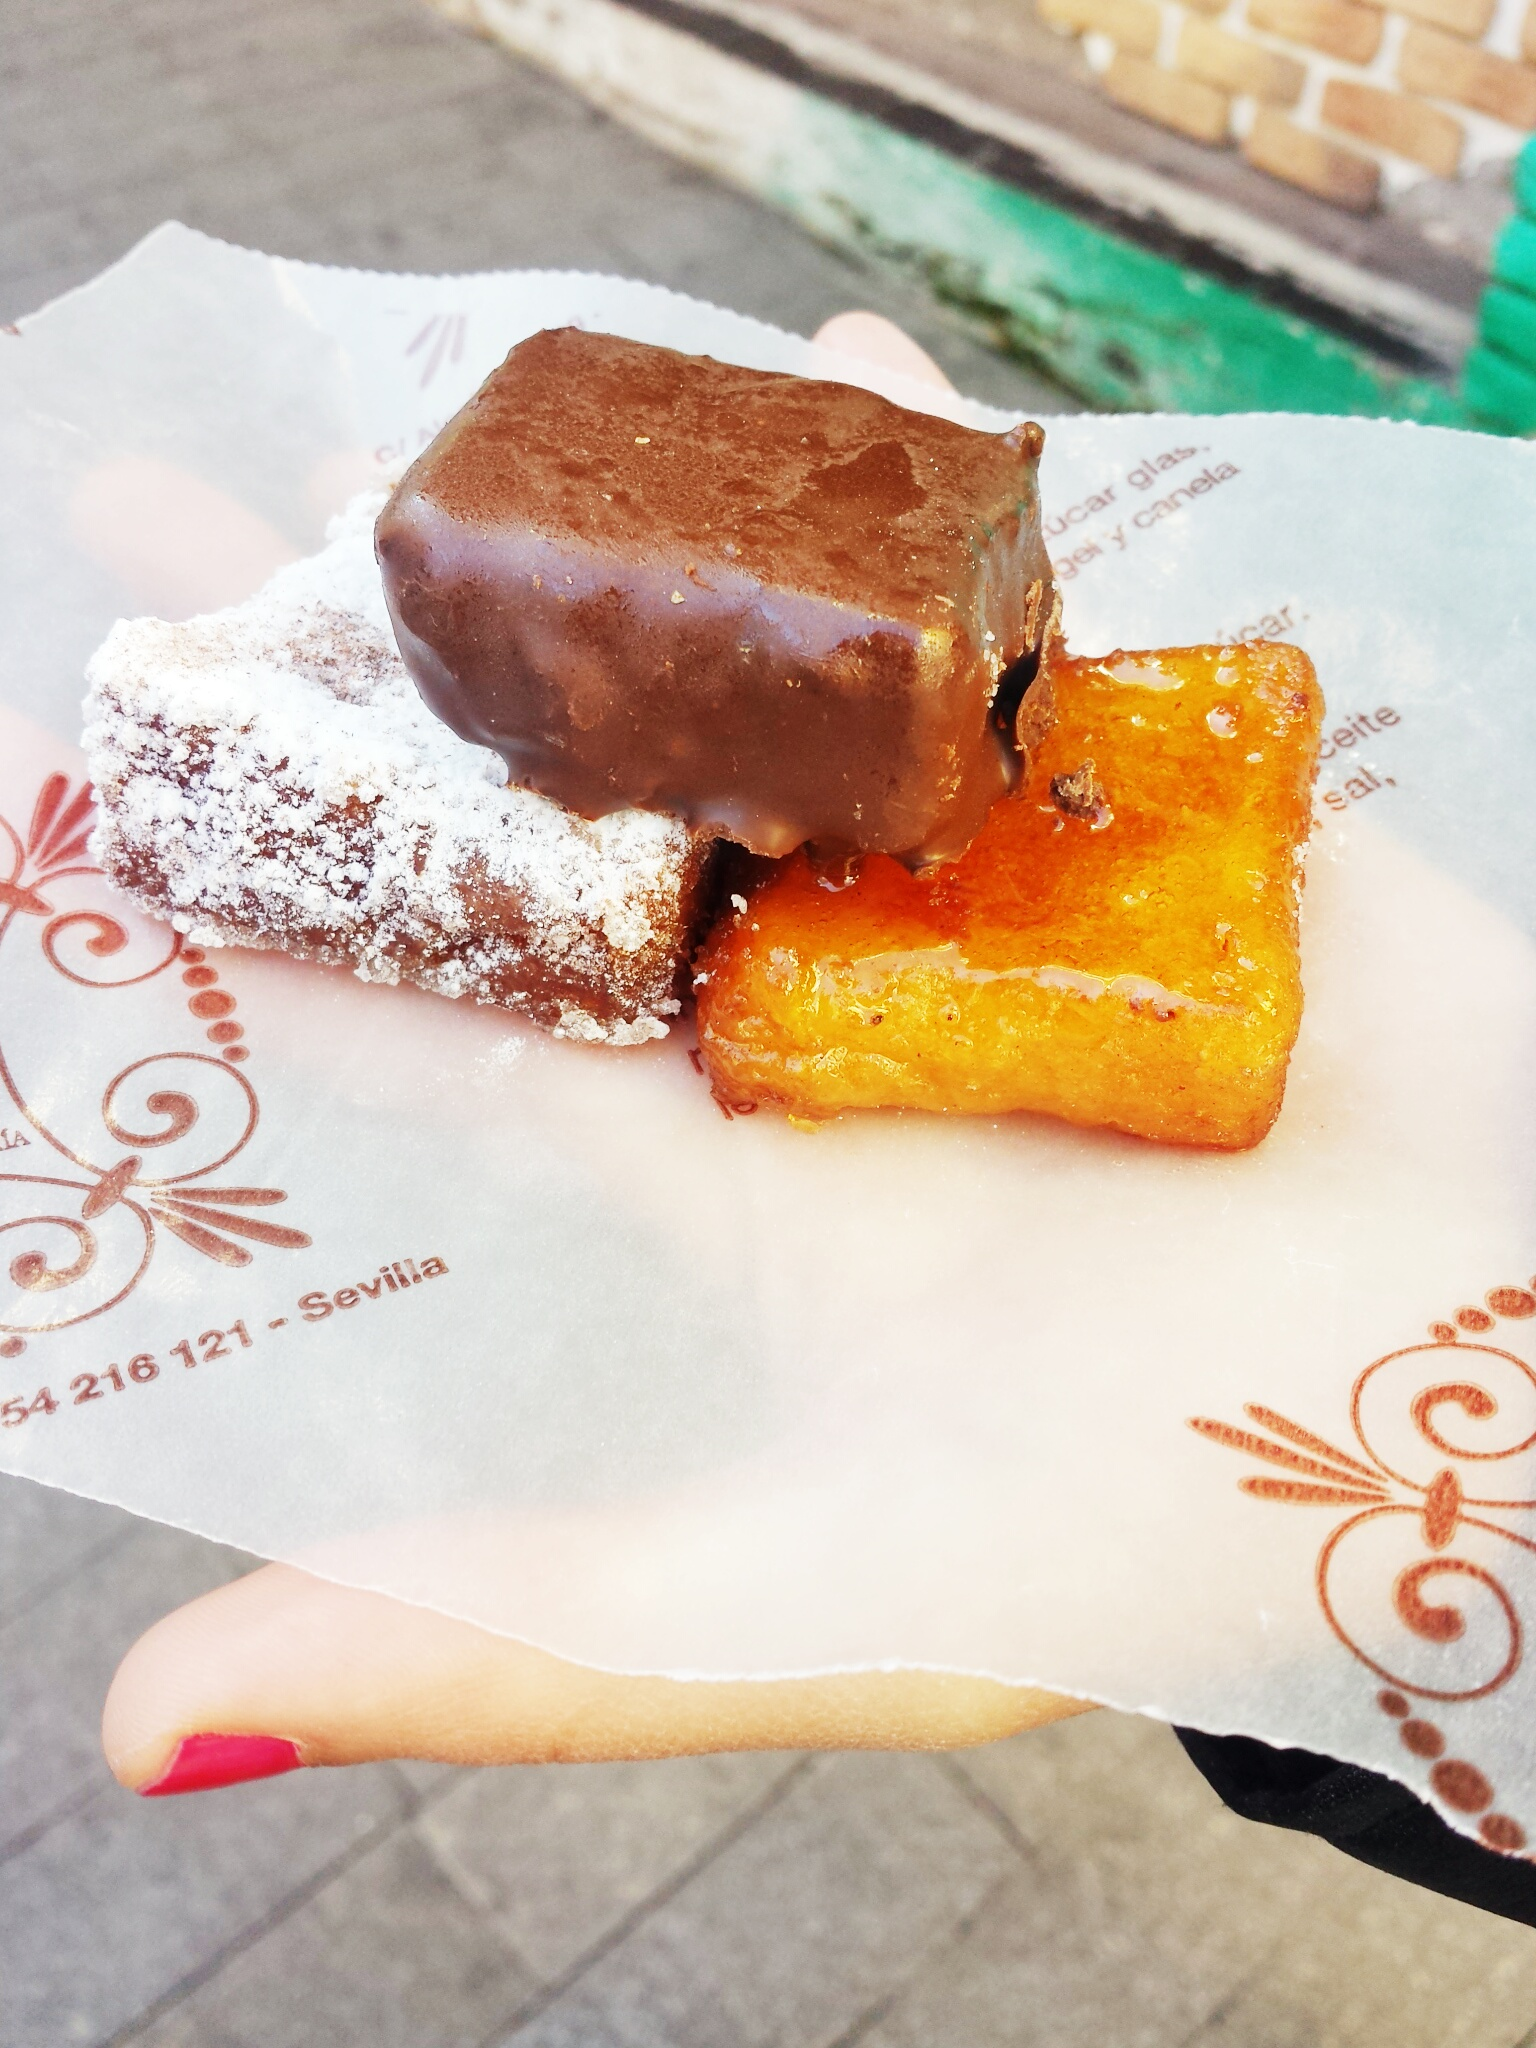 7 incredibly delicious spanish desserts - an insider's spain travel